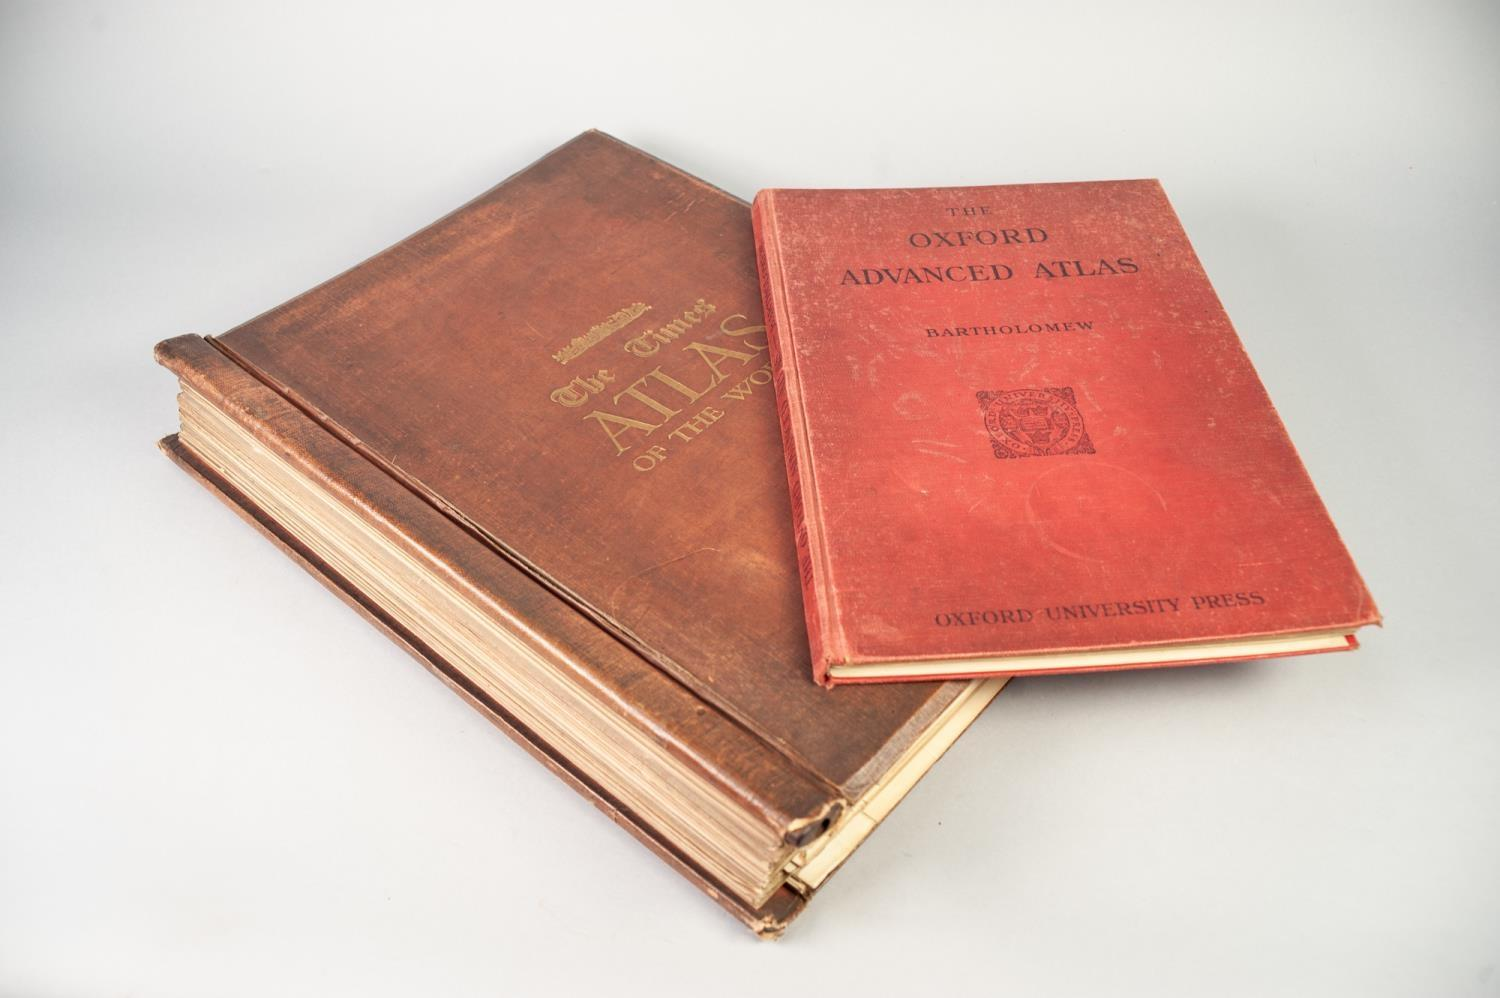 Lot 28 - THE TIMES SURVEY ATLAS OF THE WORLD, prepared under direction of J G Bartholomew, published by The